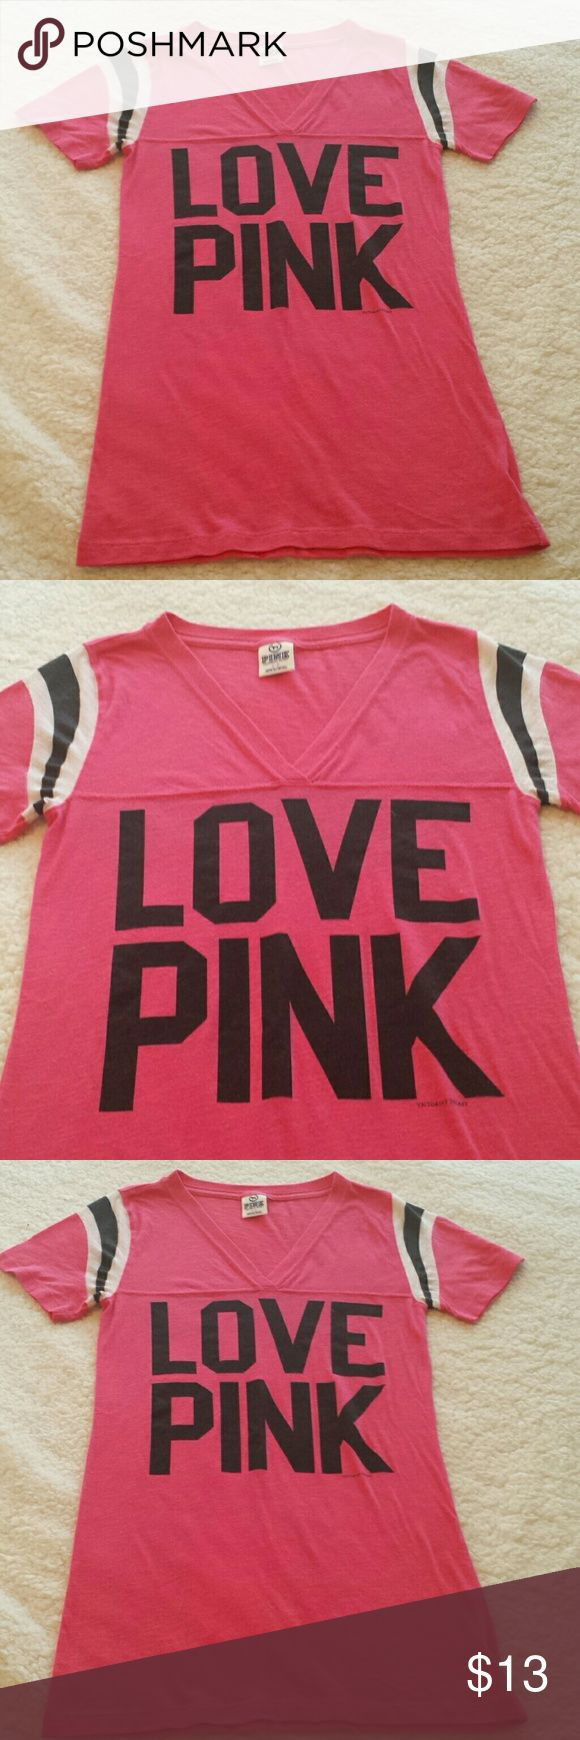 PINK VS V-Neck T-Shirt. Size Small. Pink, black, and white short sleeve , v-neck t-shirt by Victoria's Secret PINK. Pics of front and back are posted. Good used condition. No holes or stains. Size Small. Fit is TTS, not oversized. PINK Victoria's Secret Tops Tees - Short Sleeve